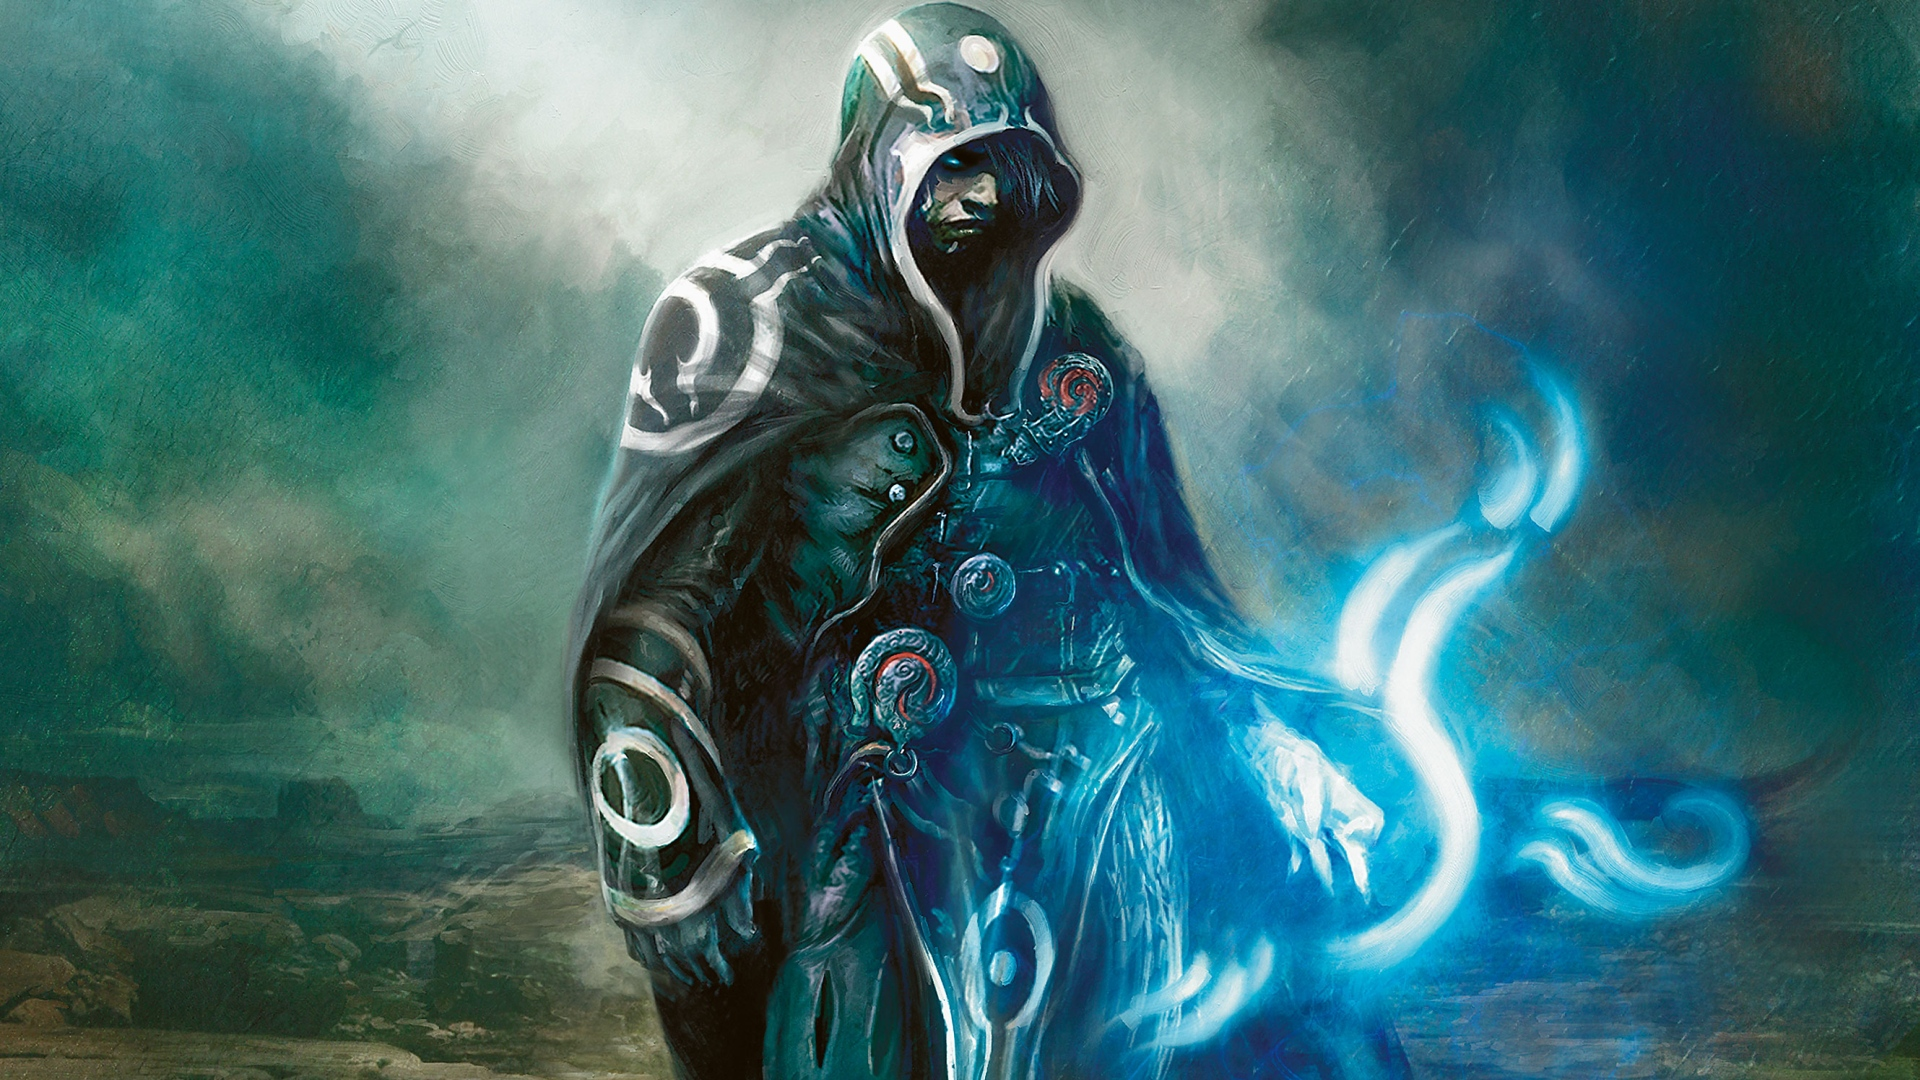 Magic The Gathering Fantasy Art Artwork Jace Beleren Mtg